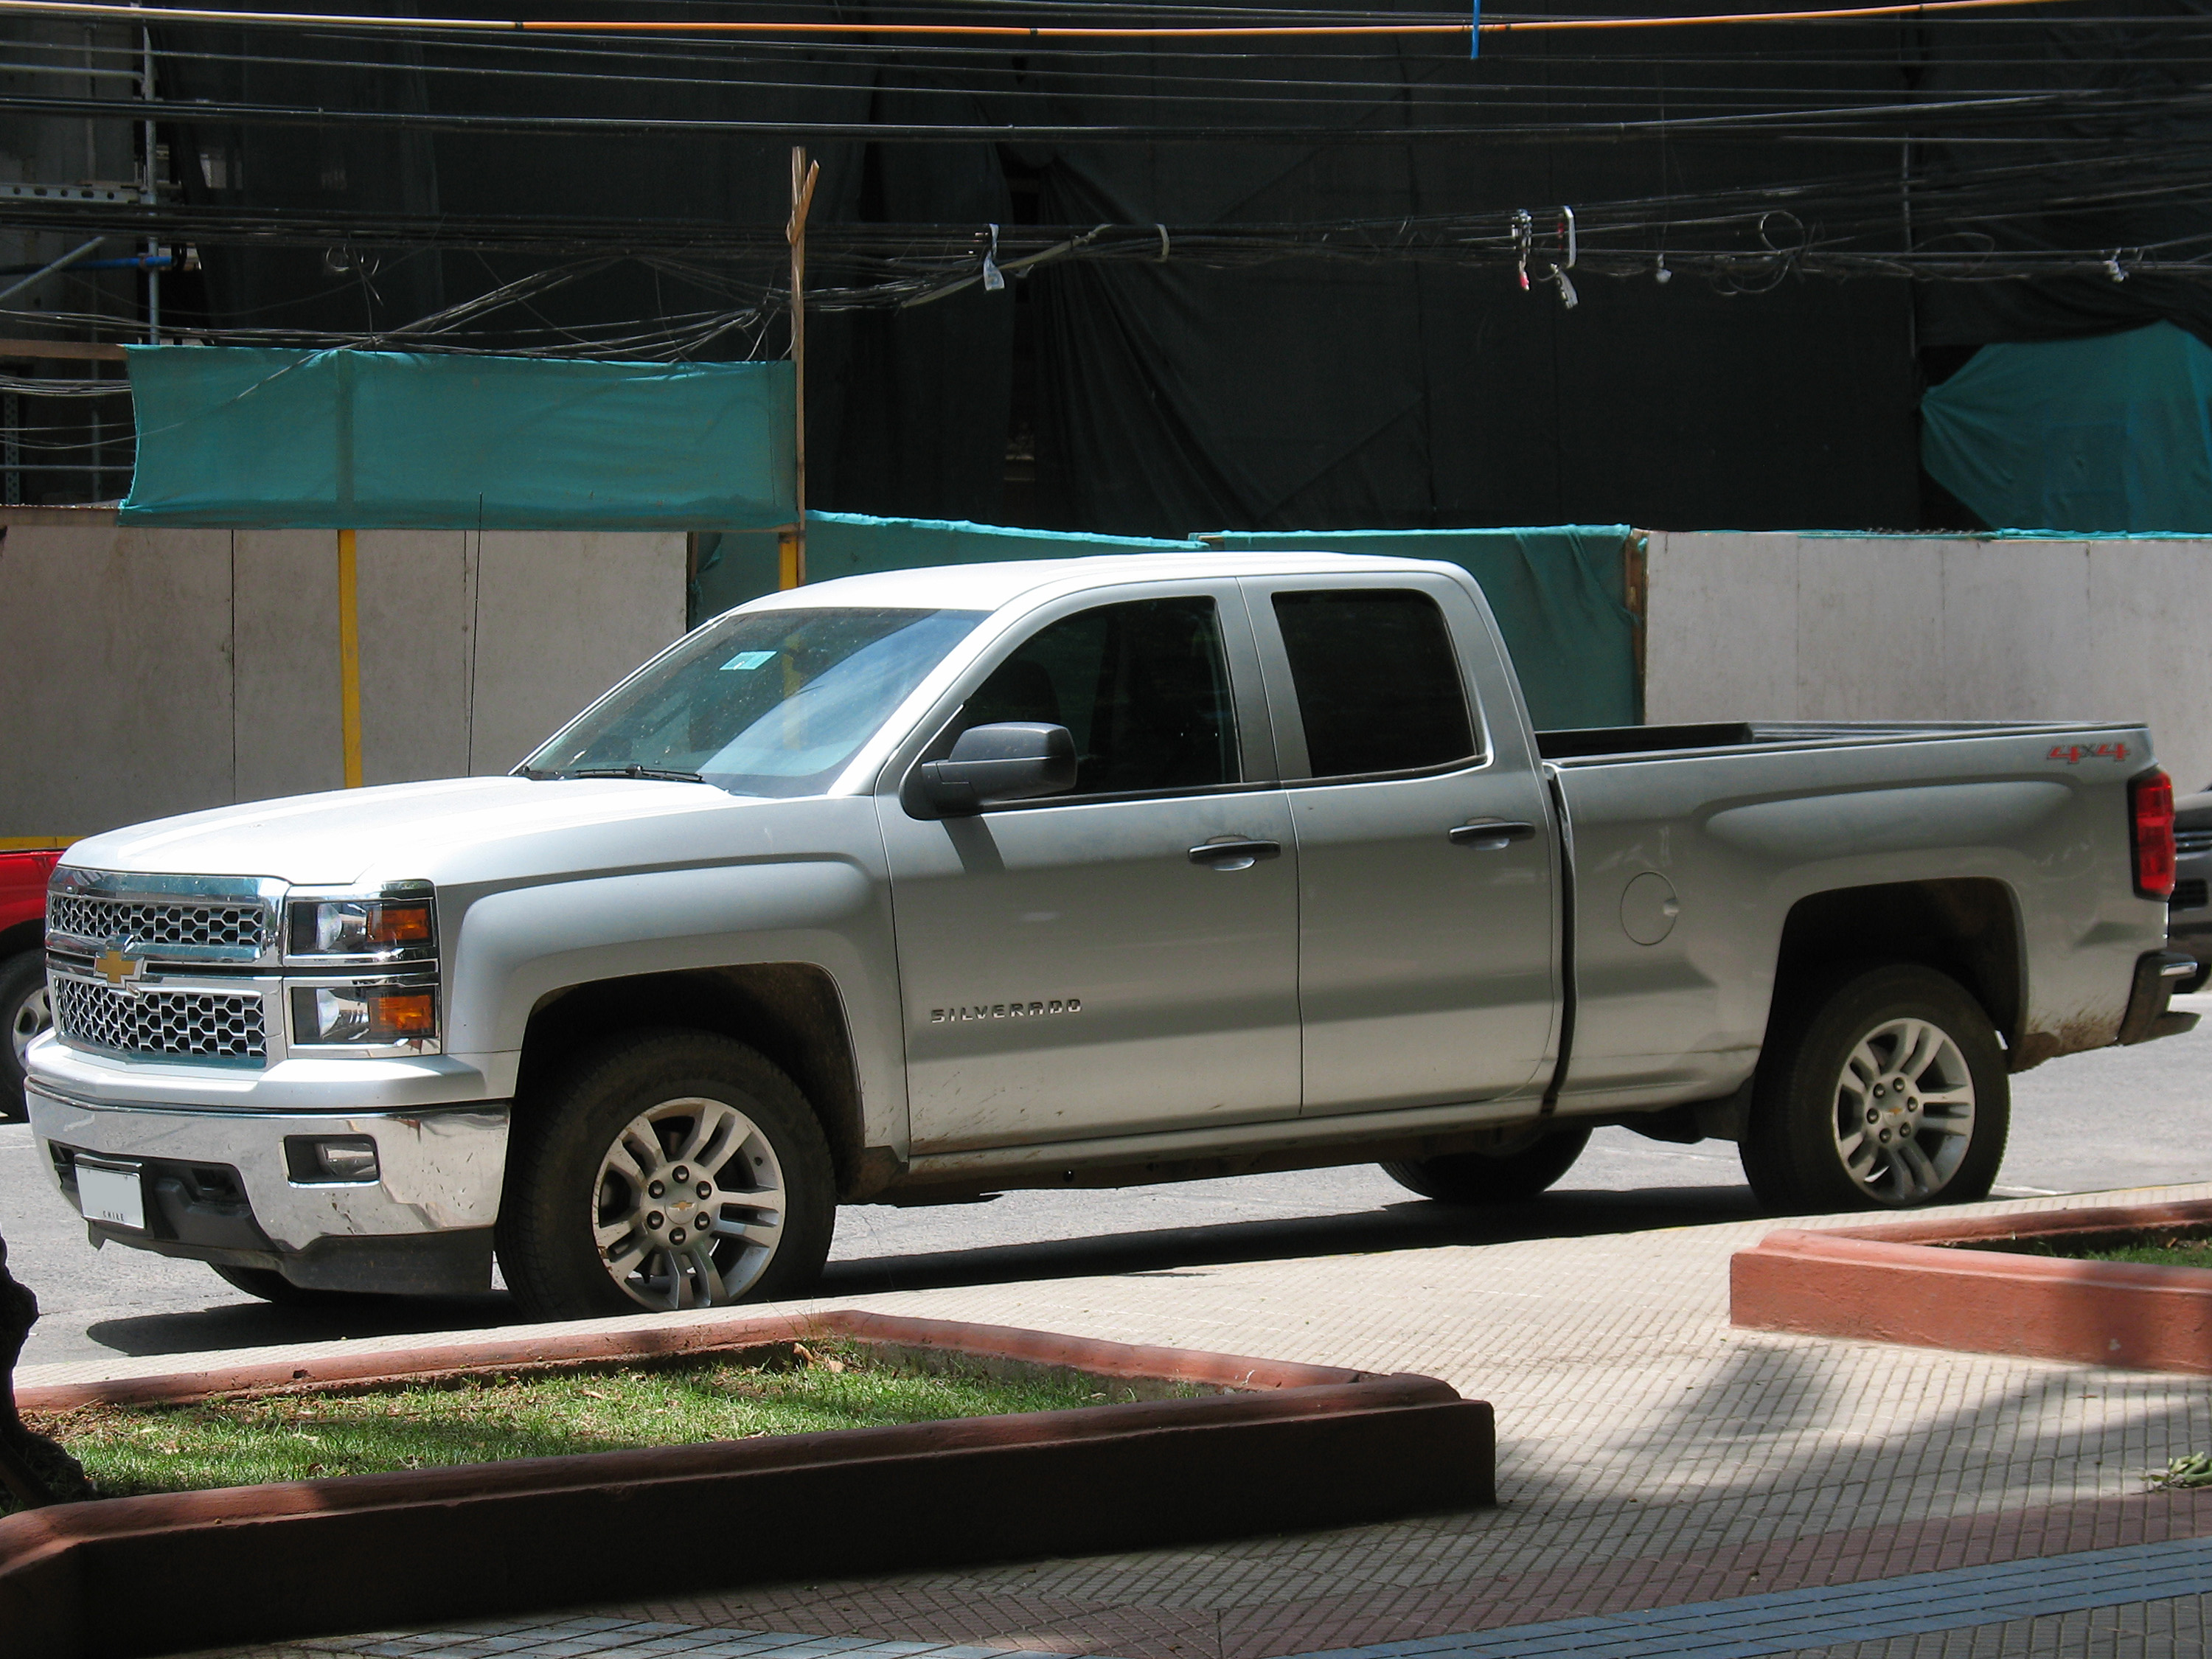 file chevrolet silverado lt extended cab 4x4 2014 16178368661 jpg wikimedia commons. Black Bedroom Furniture Sets. Home Design Ideas